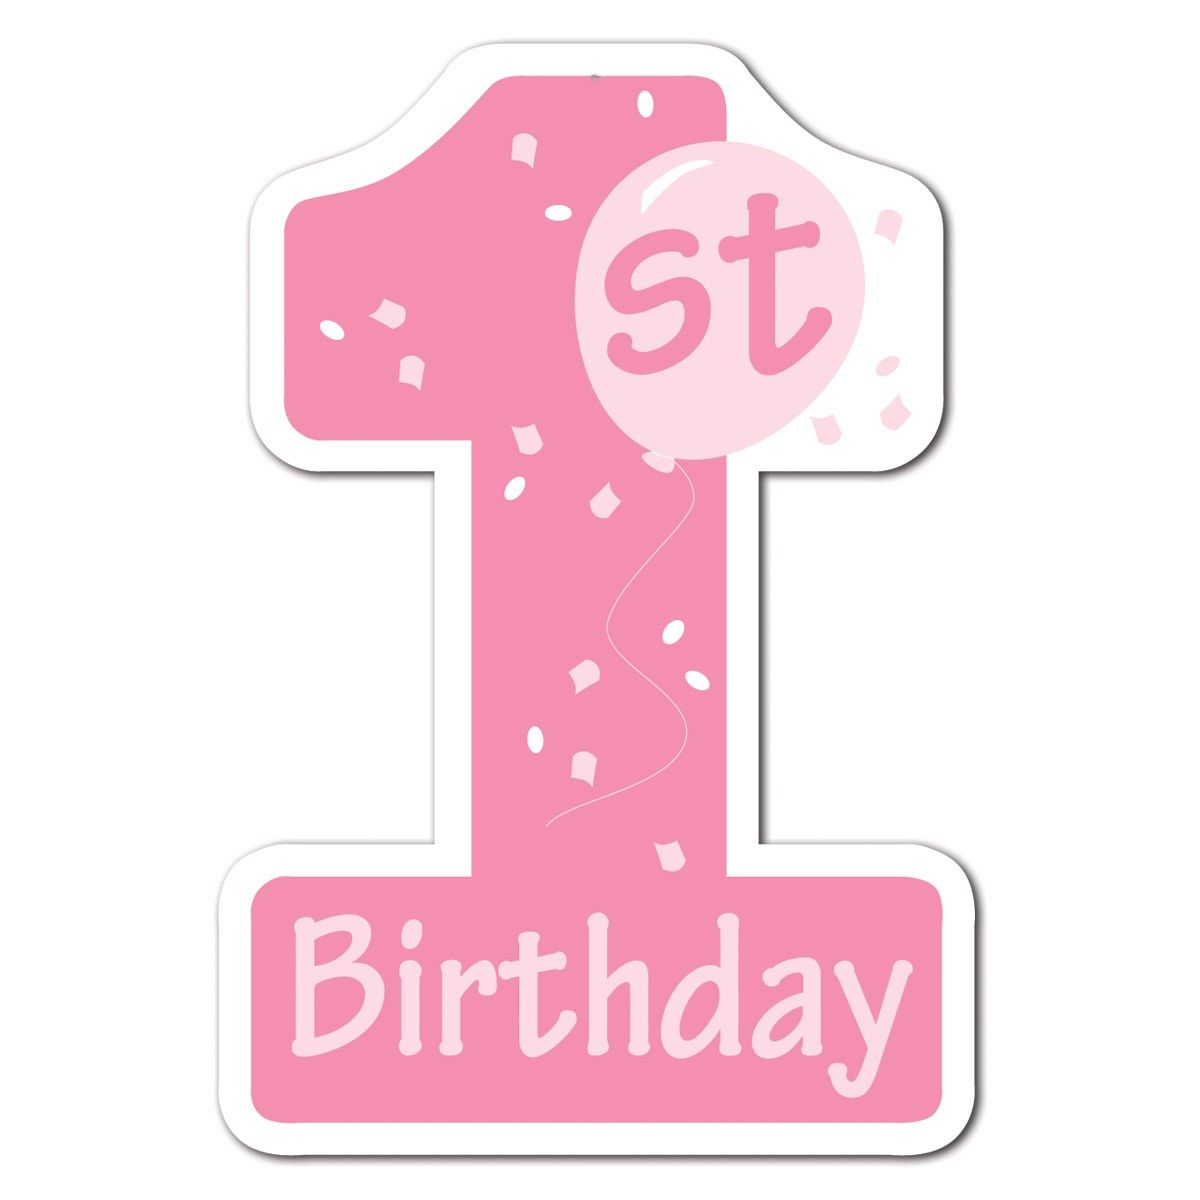 Baby girl birthday clipart png royalty free 1st birthday clipart - ClipartFest | 1st Birthday Minnie Mouse | 1st ... png royalty free